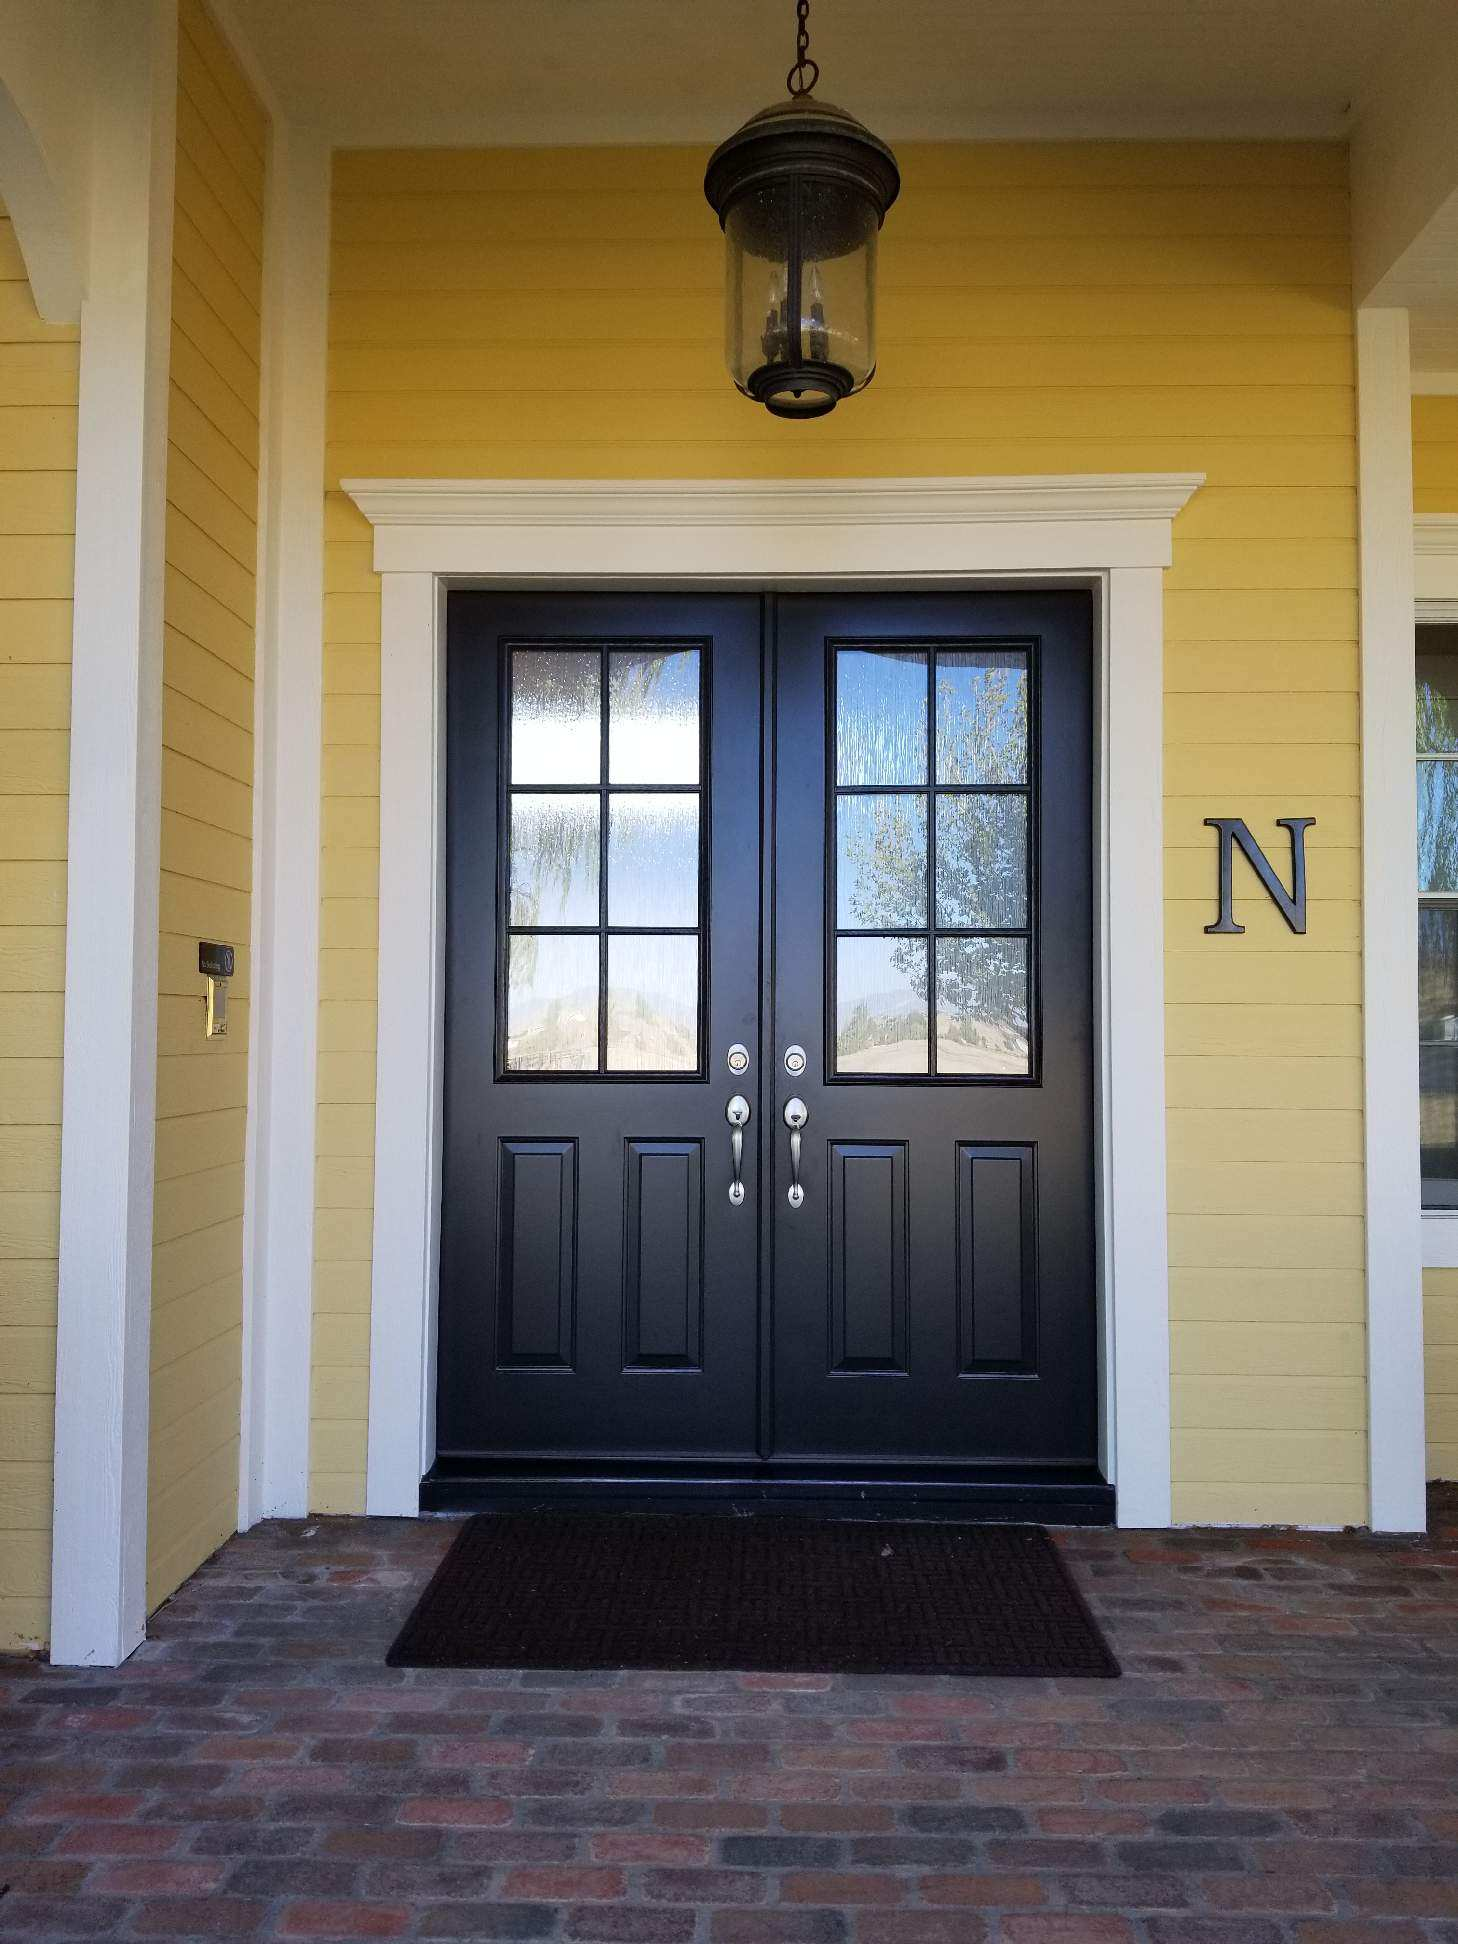 Arizona Window and Door in Scottsdale and Tucson showing entryway door with windows